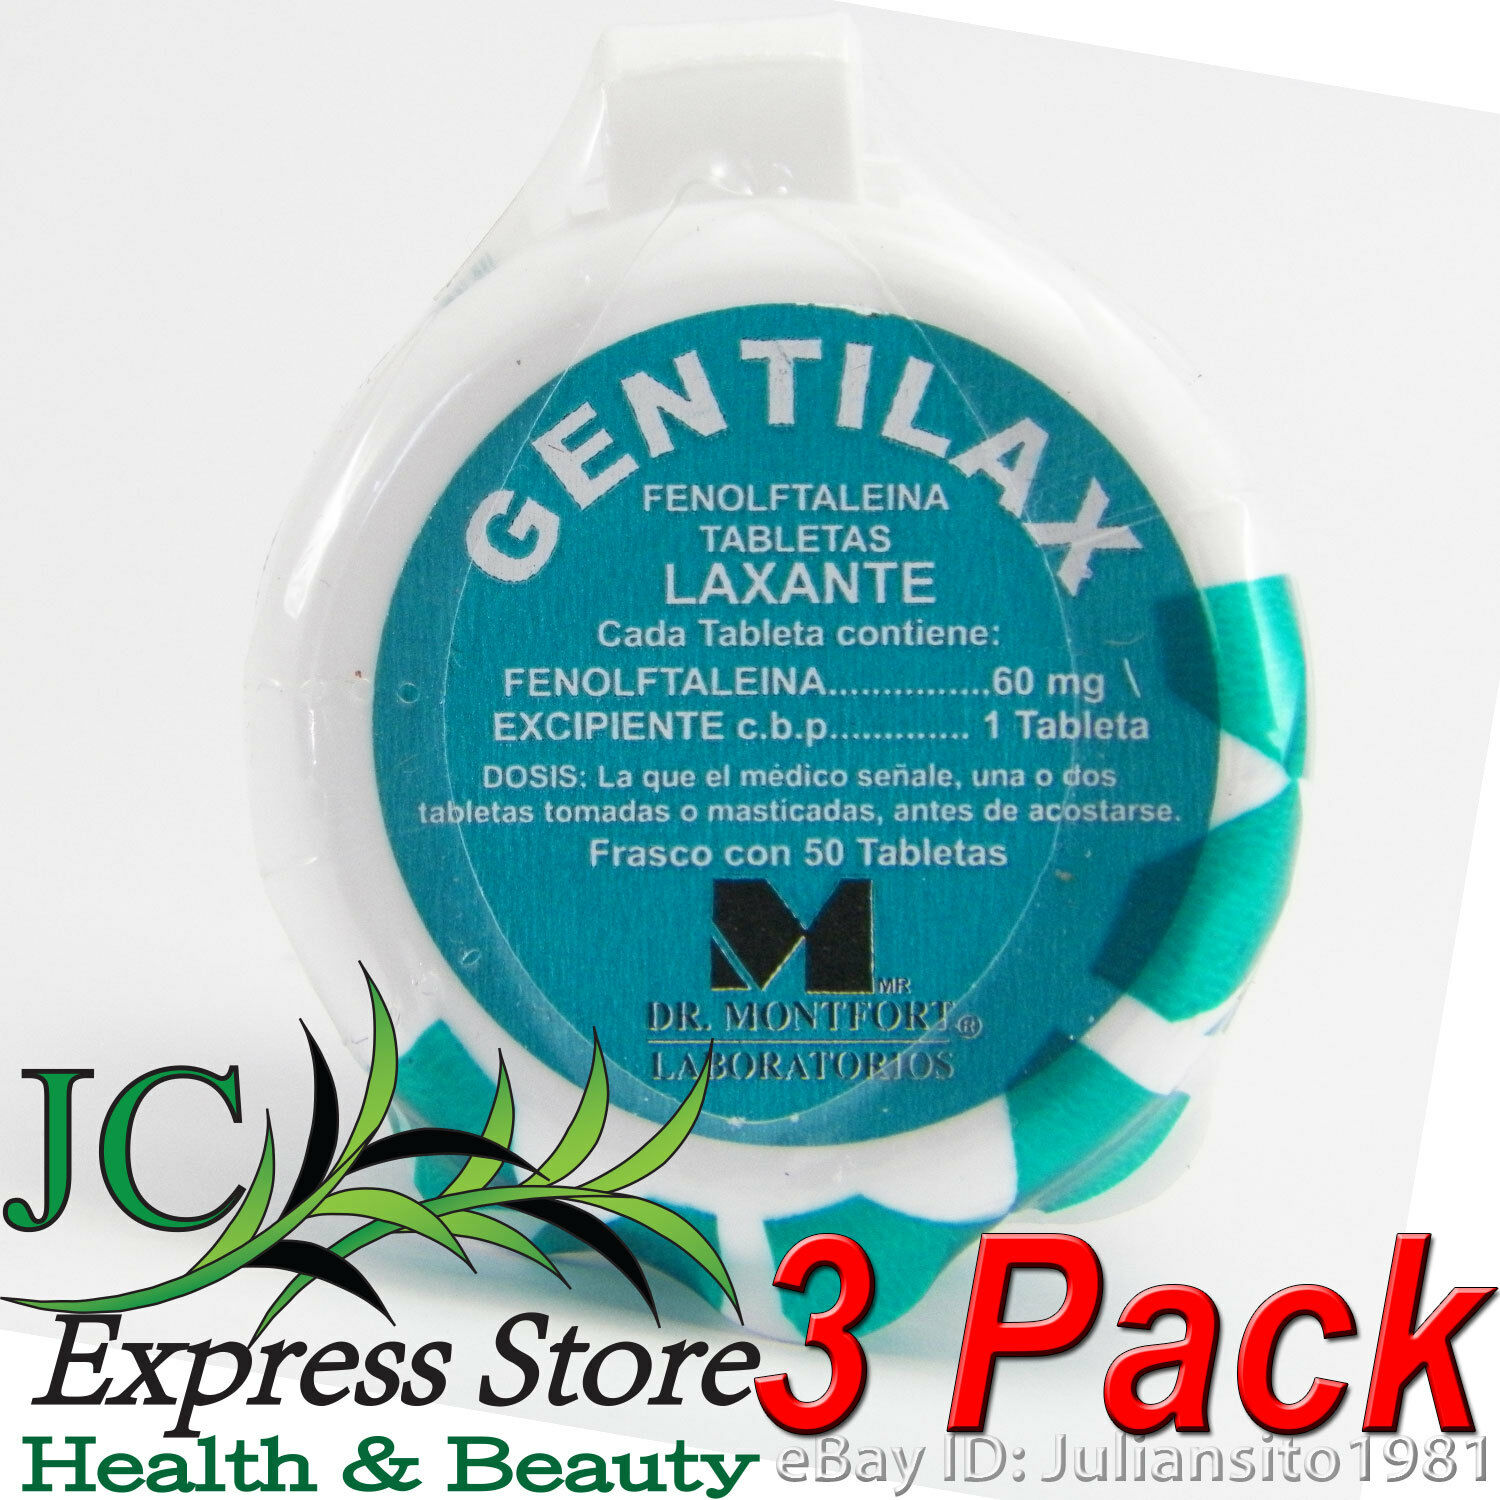 GENTILAX 3 PACK LAXATIVE PILLS/PILDORAS LAXANTES 150 PILLS TOTAL